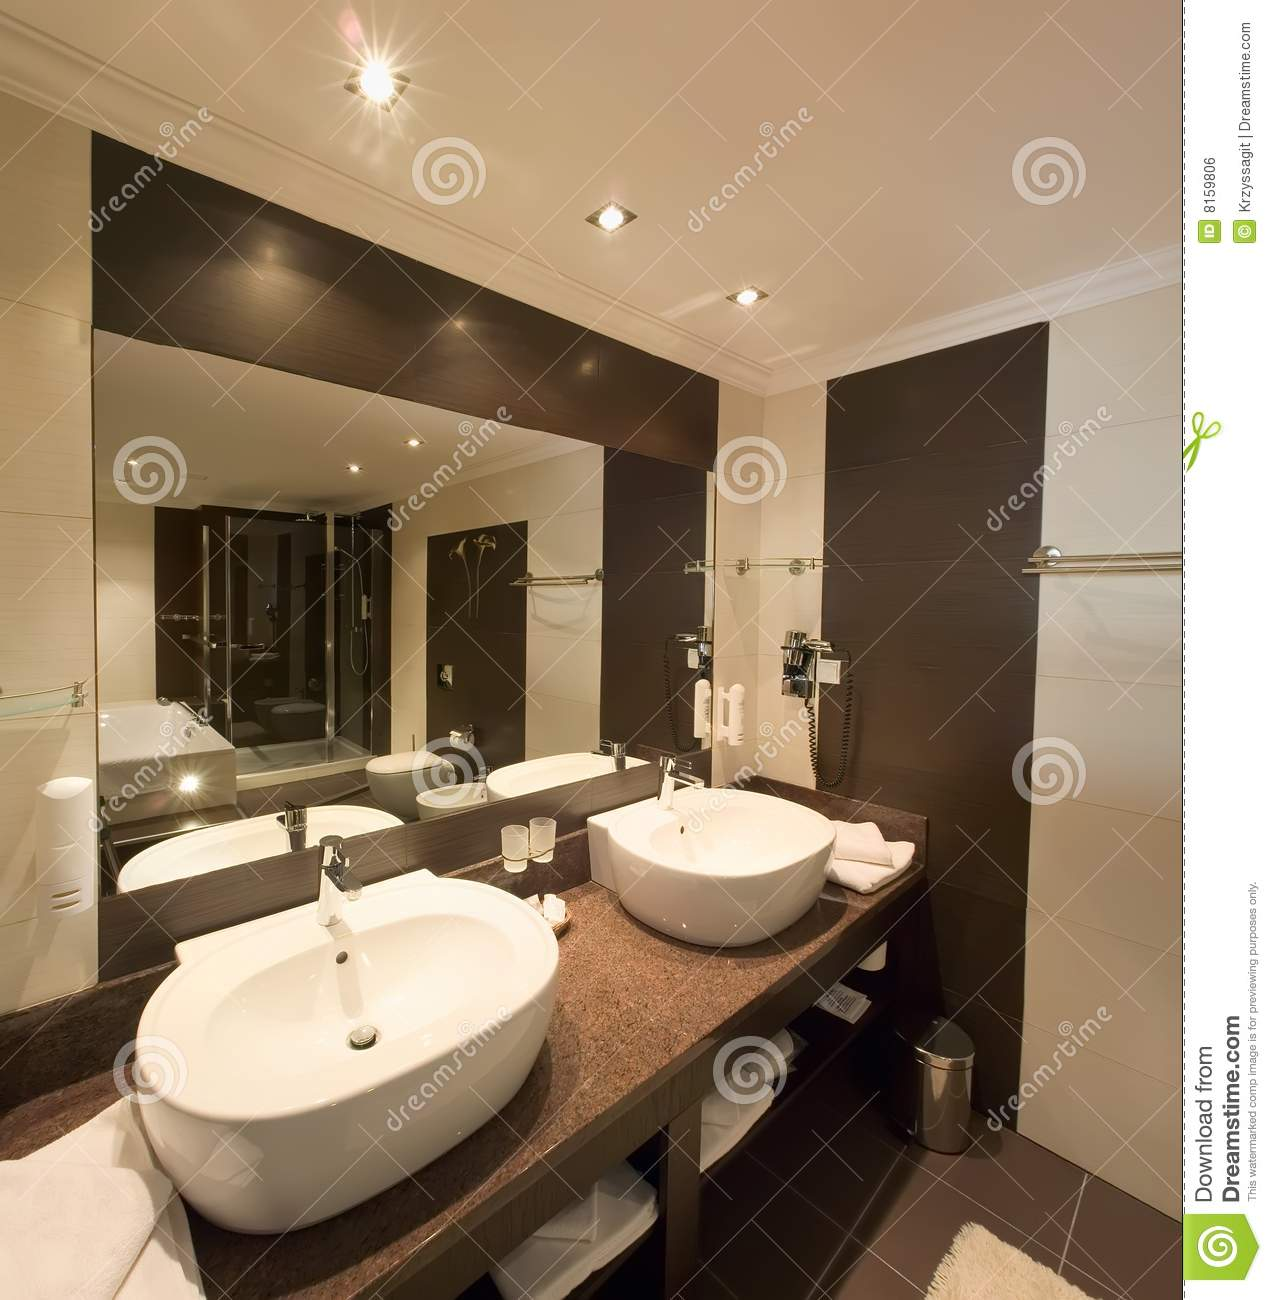 Elegant washroom stock photo image of architecture for Washroom designs pictures